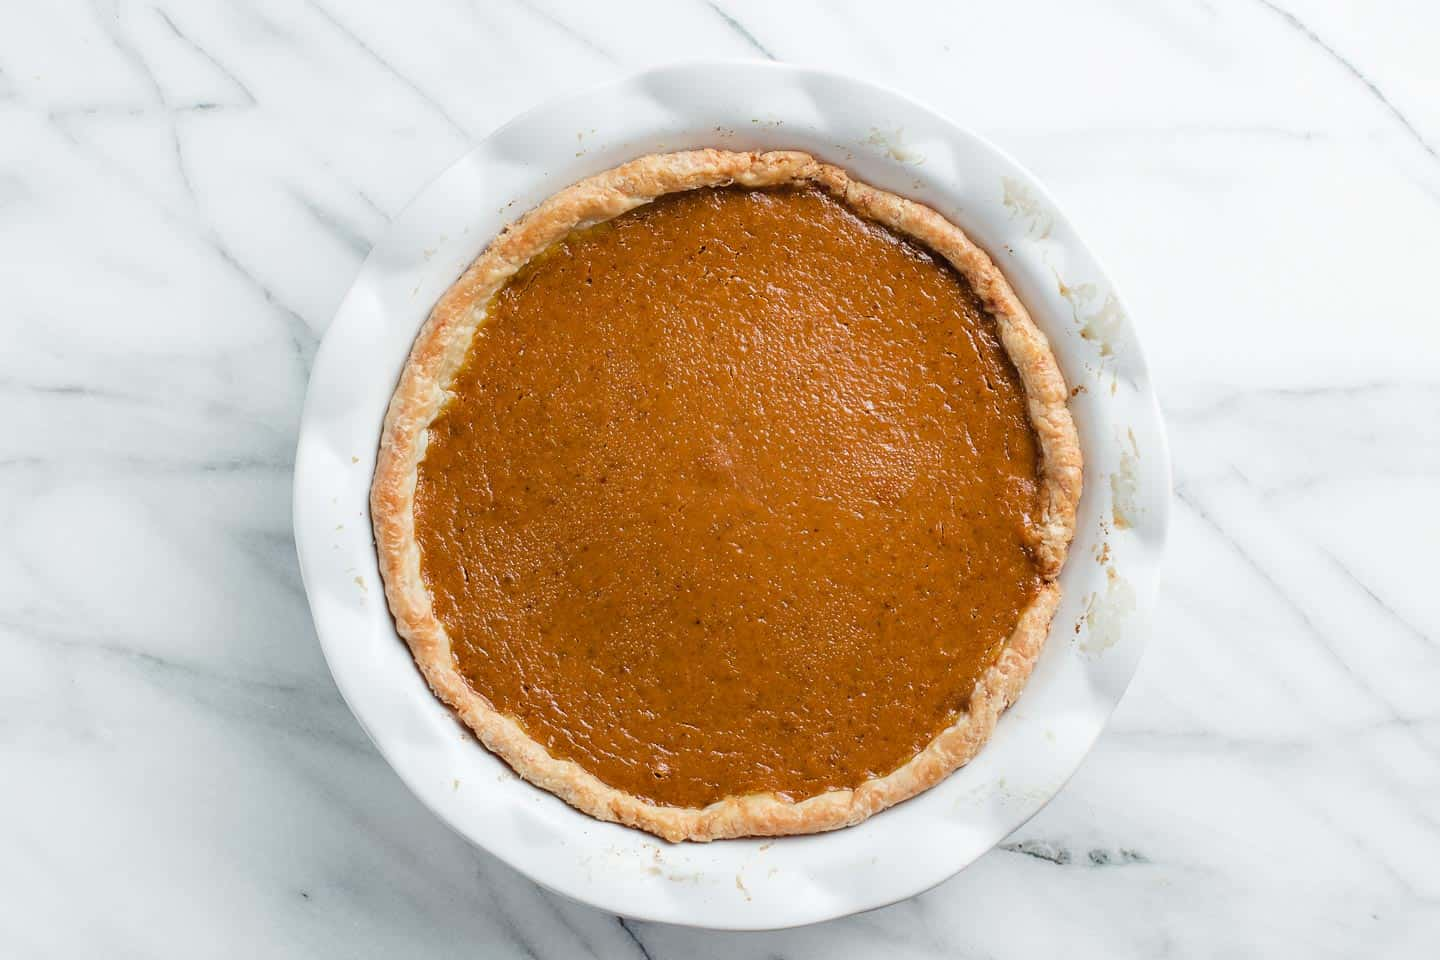 A baked pumpkin pie cooling on the counter.